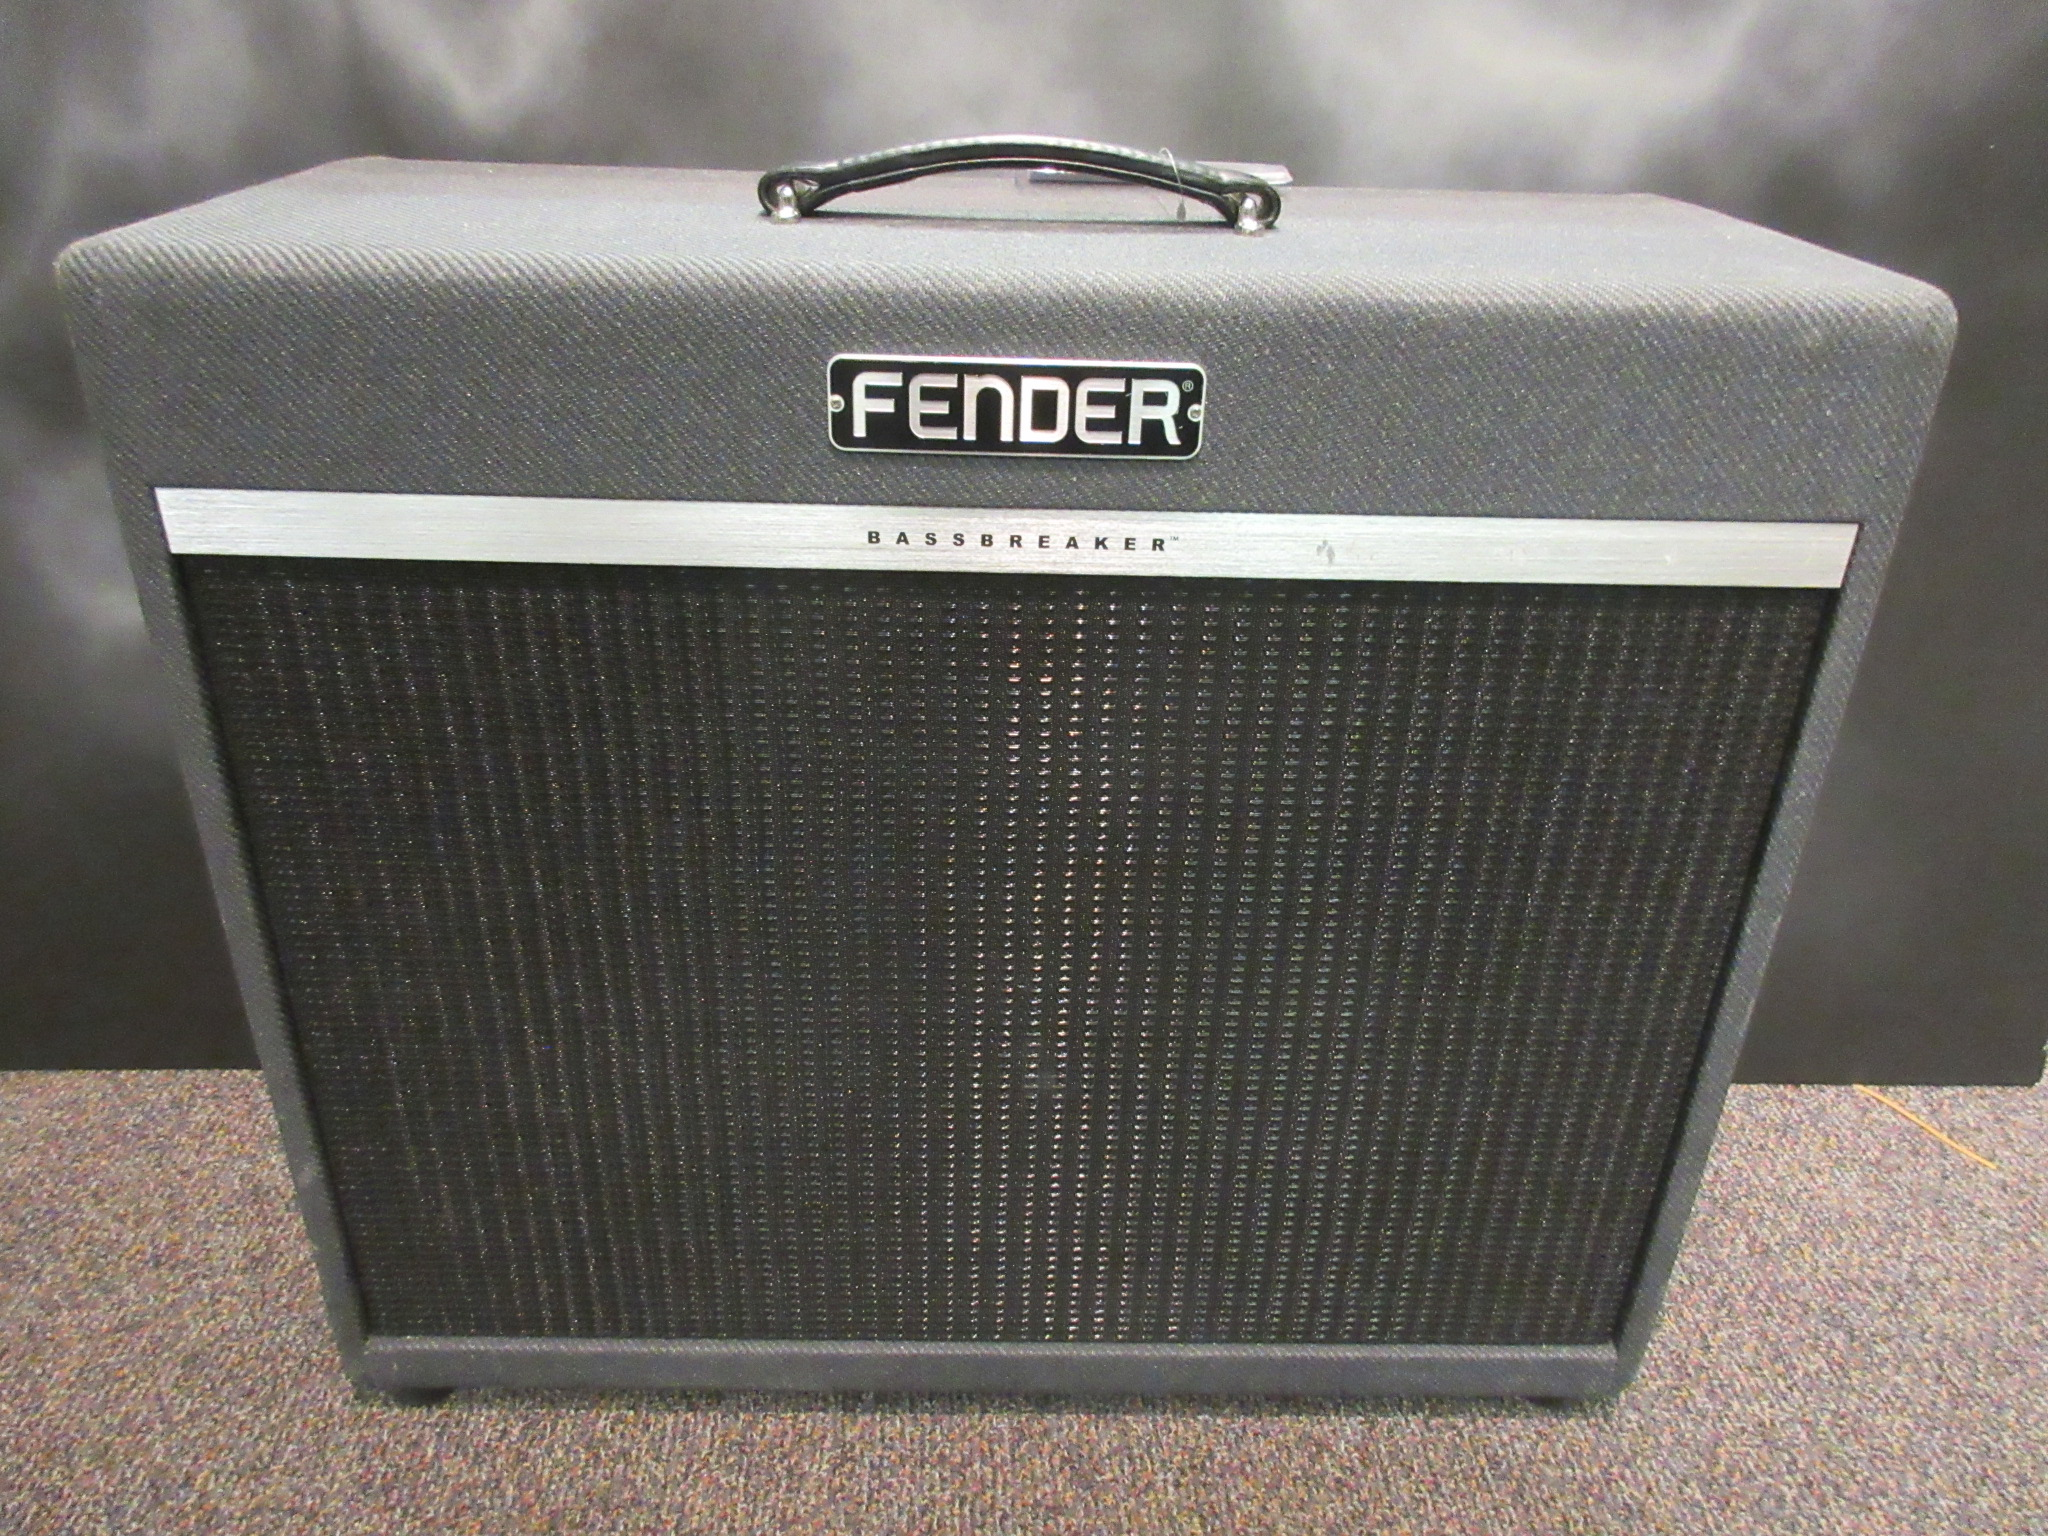 Fender - Bass Breaker 2x12